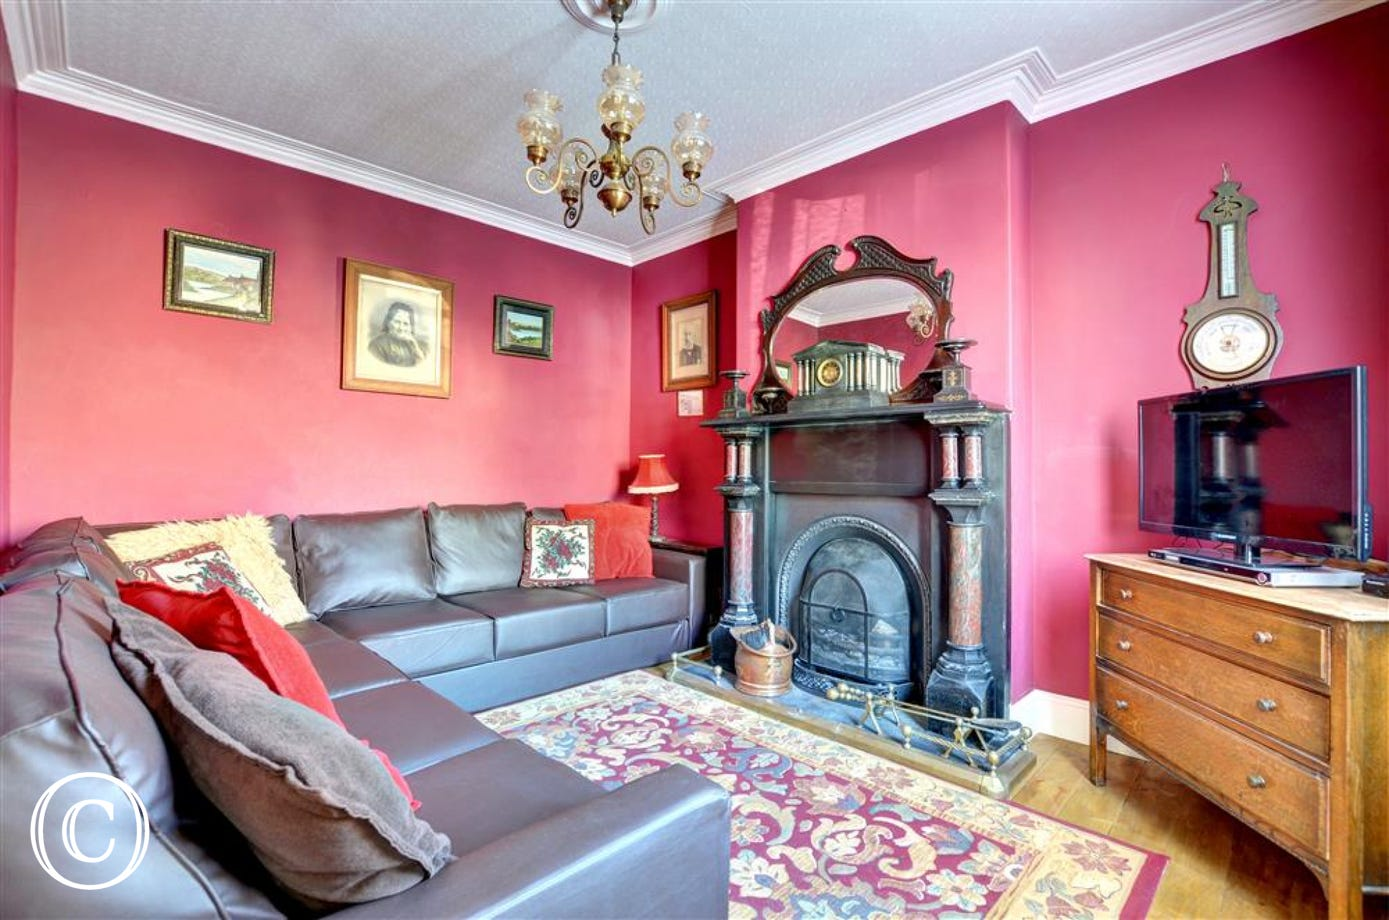 Cosy living room bursting with character, featuring an original fireplace.